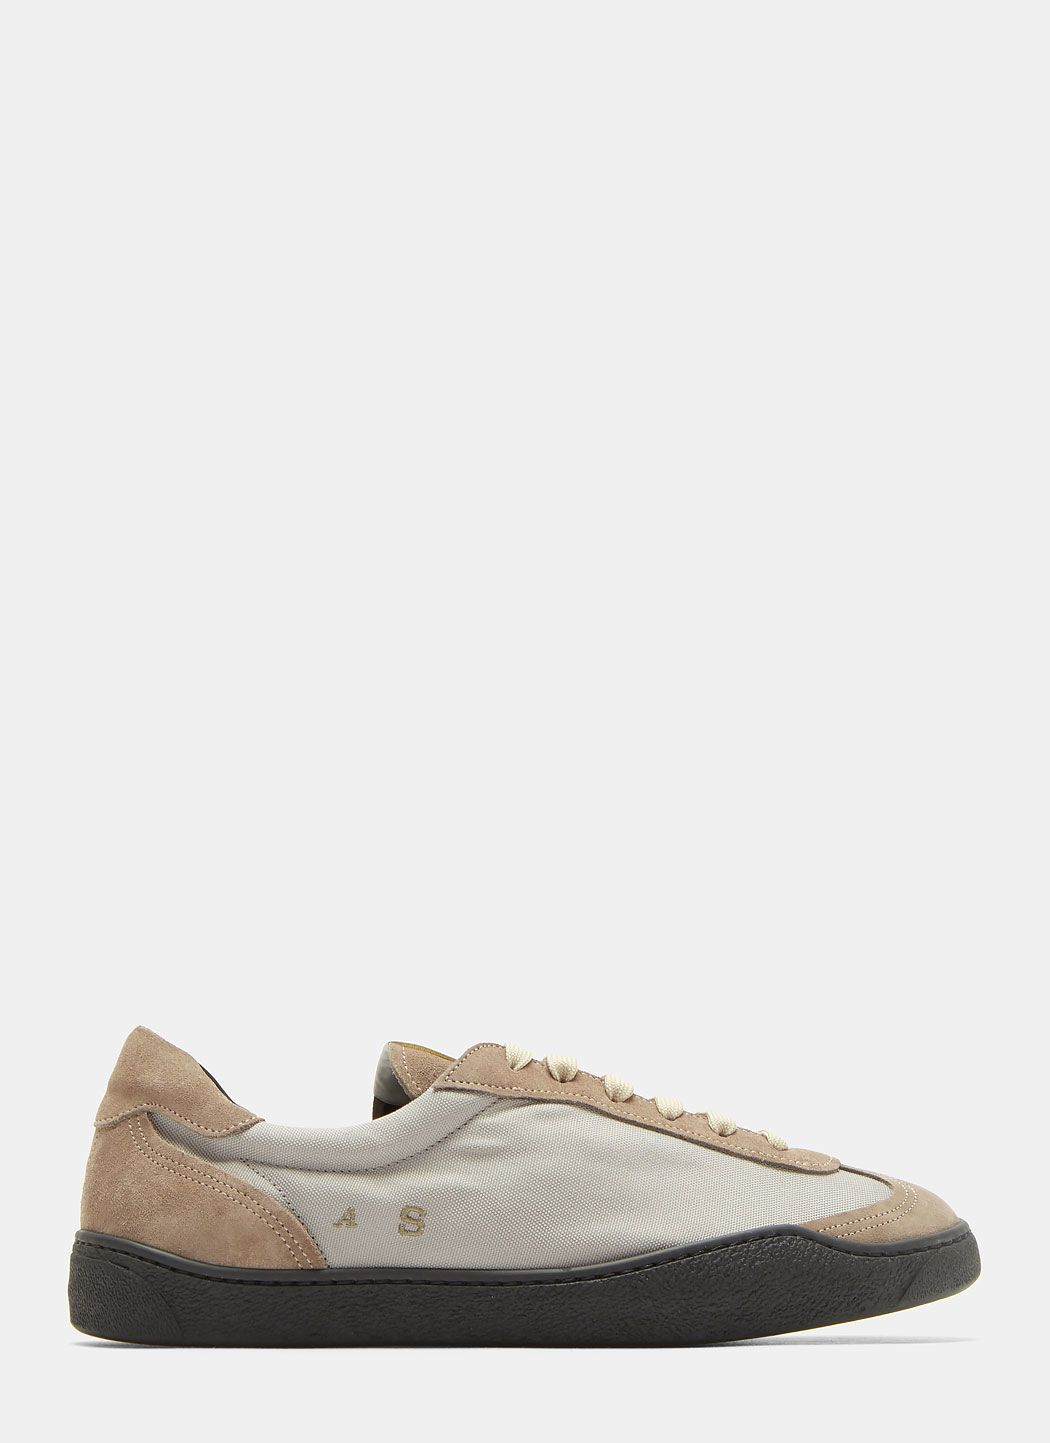 Acne Studios Lars Canvas And Suede Sneakers from china cheap price AG1ke